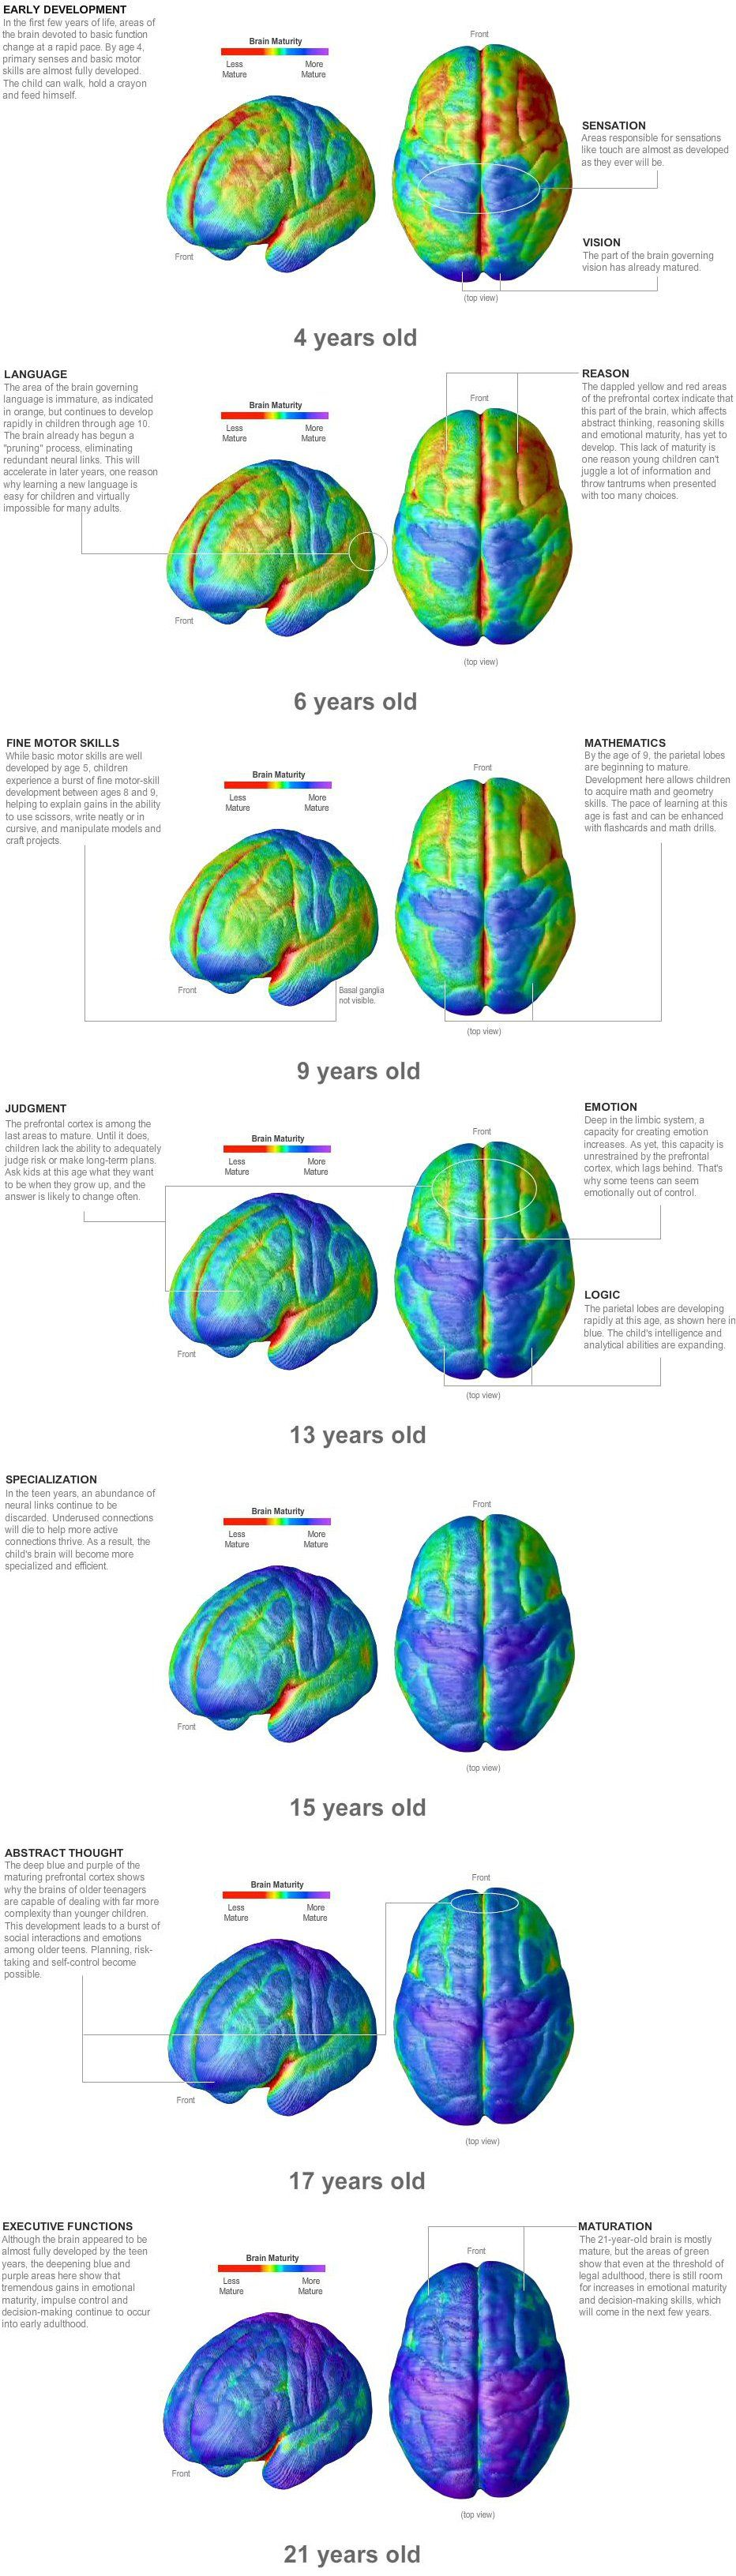 Maturation of the human brain httpmedia cache ak0pinimg maturation of the human brain httpmedia cache ak0pinimgoriginals26db1526db157020e9352117675031839bfa19g ap psych pinterest ccuart Choice Image